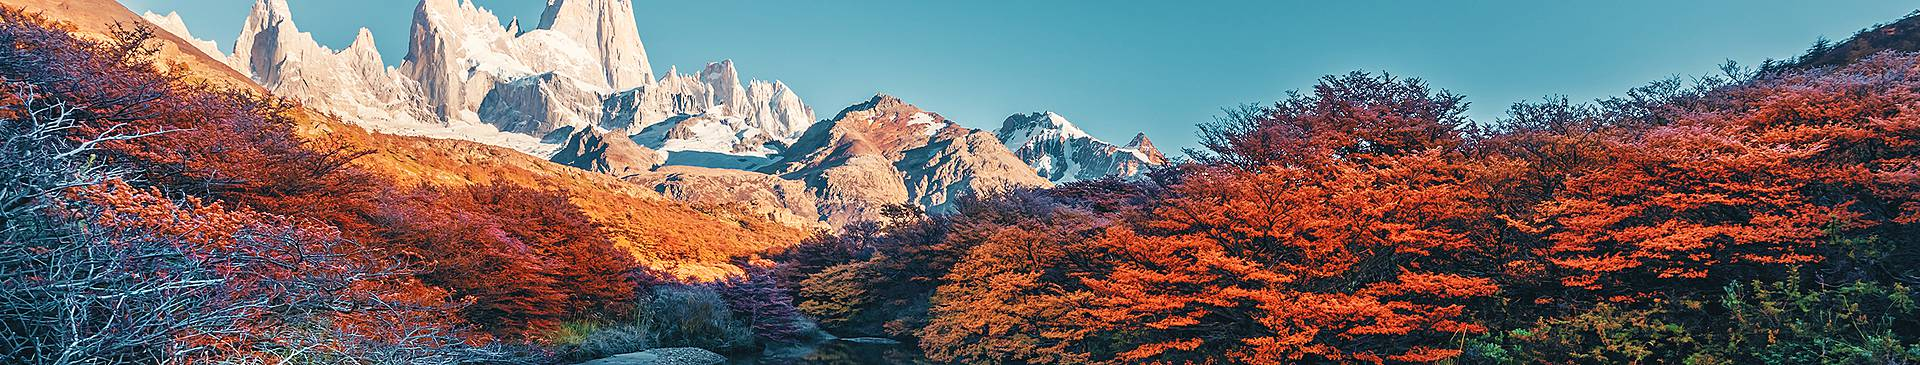 Fall in Argentina